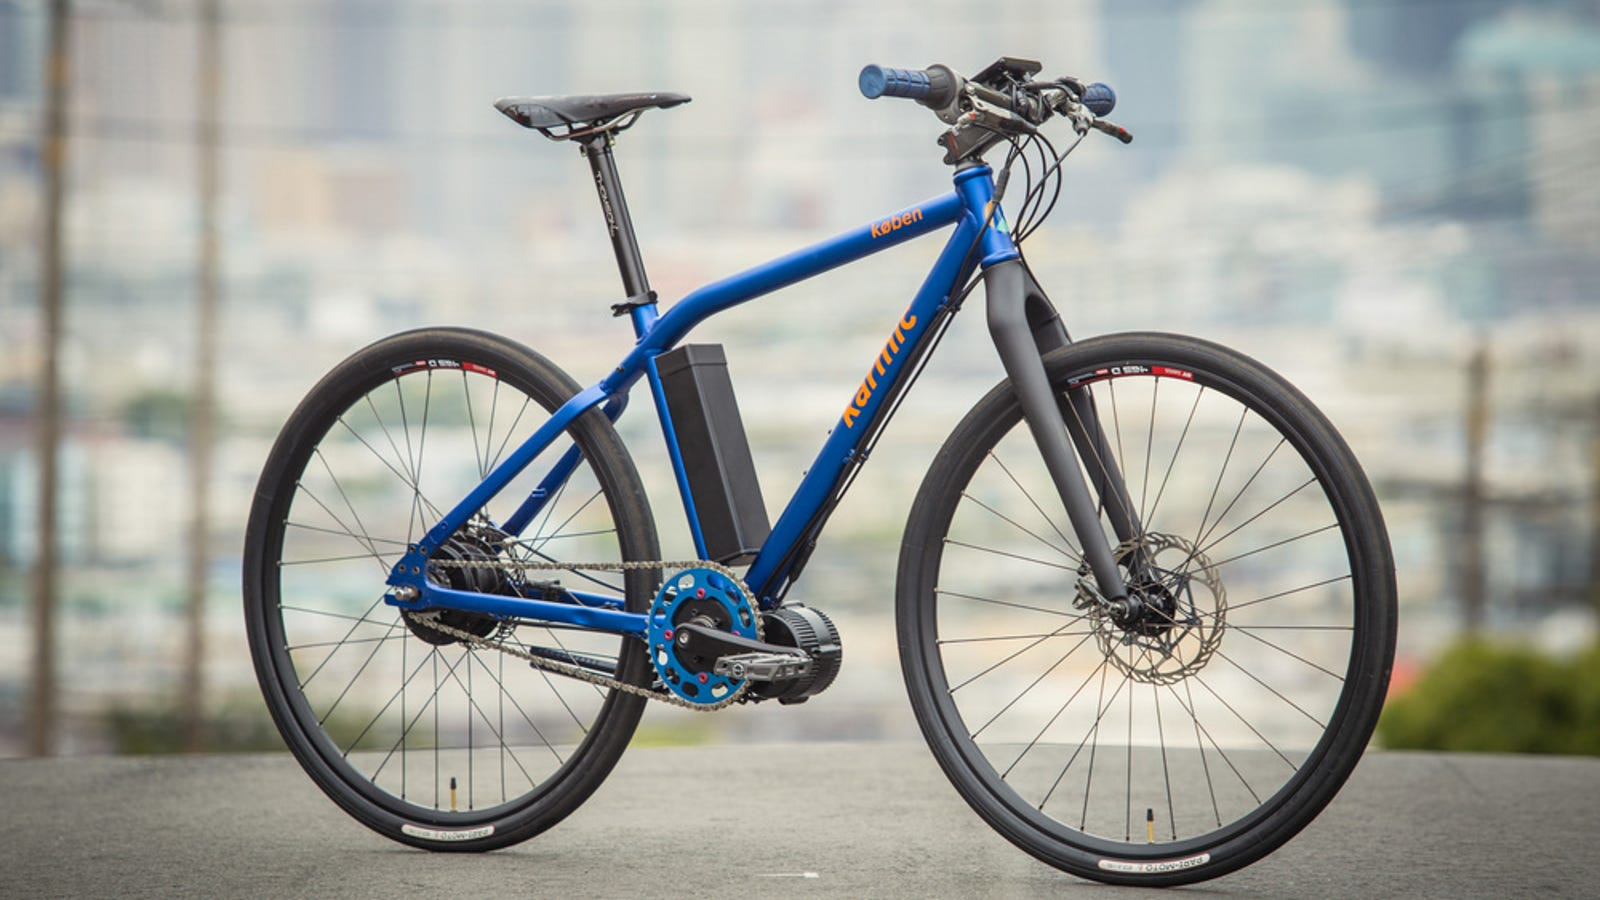 dfe80d08a90 What's Wrong With Electric Bicycles